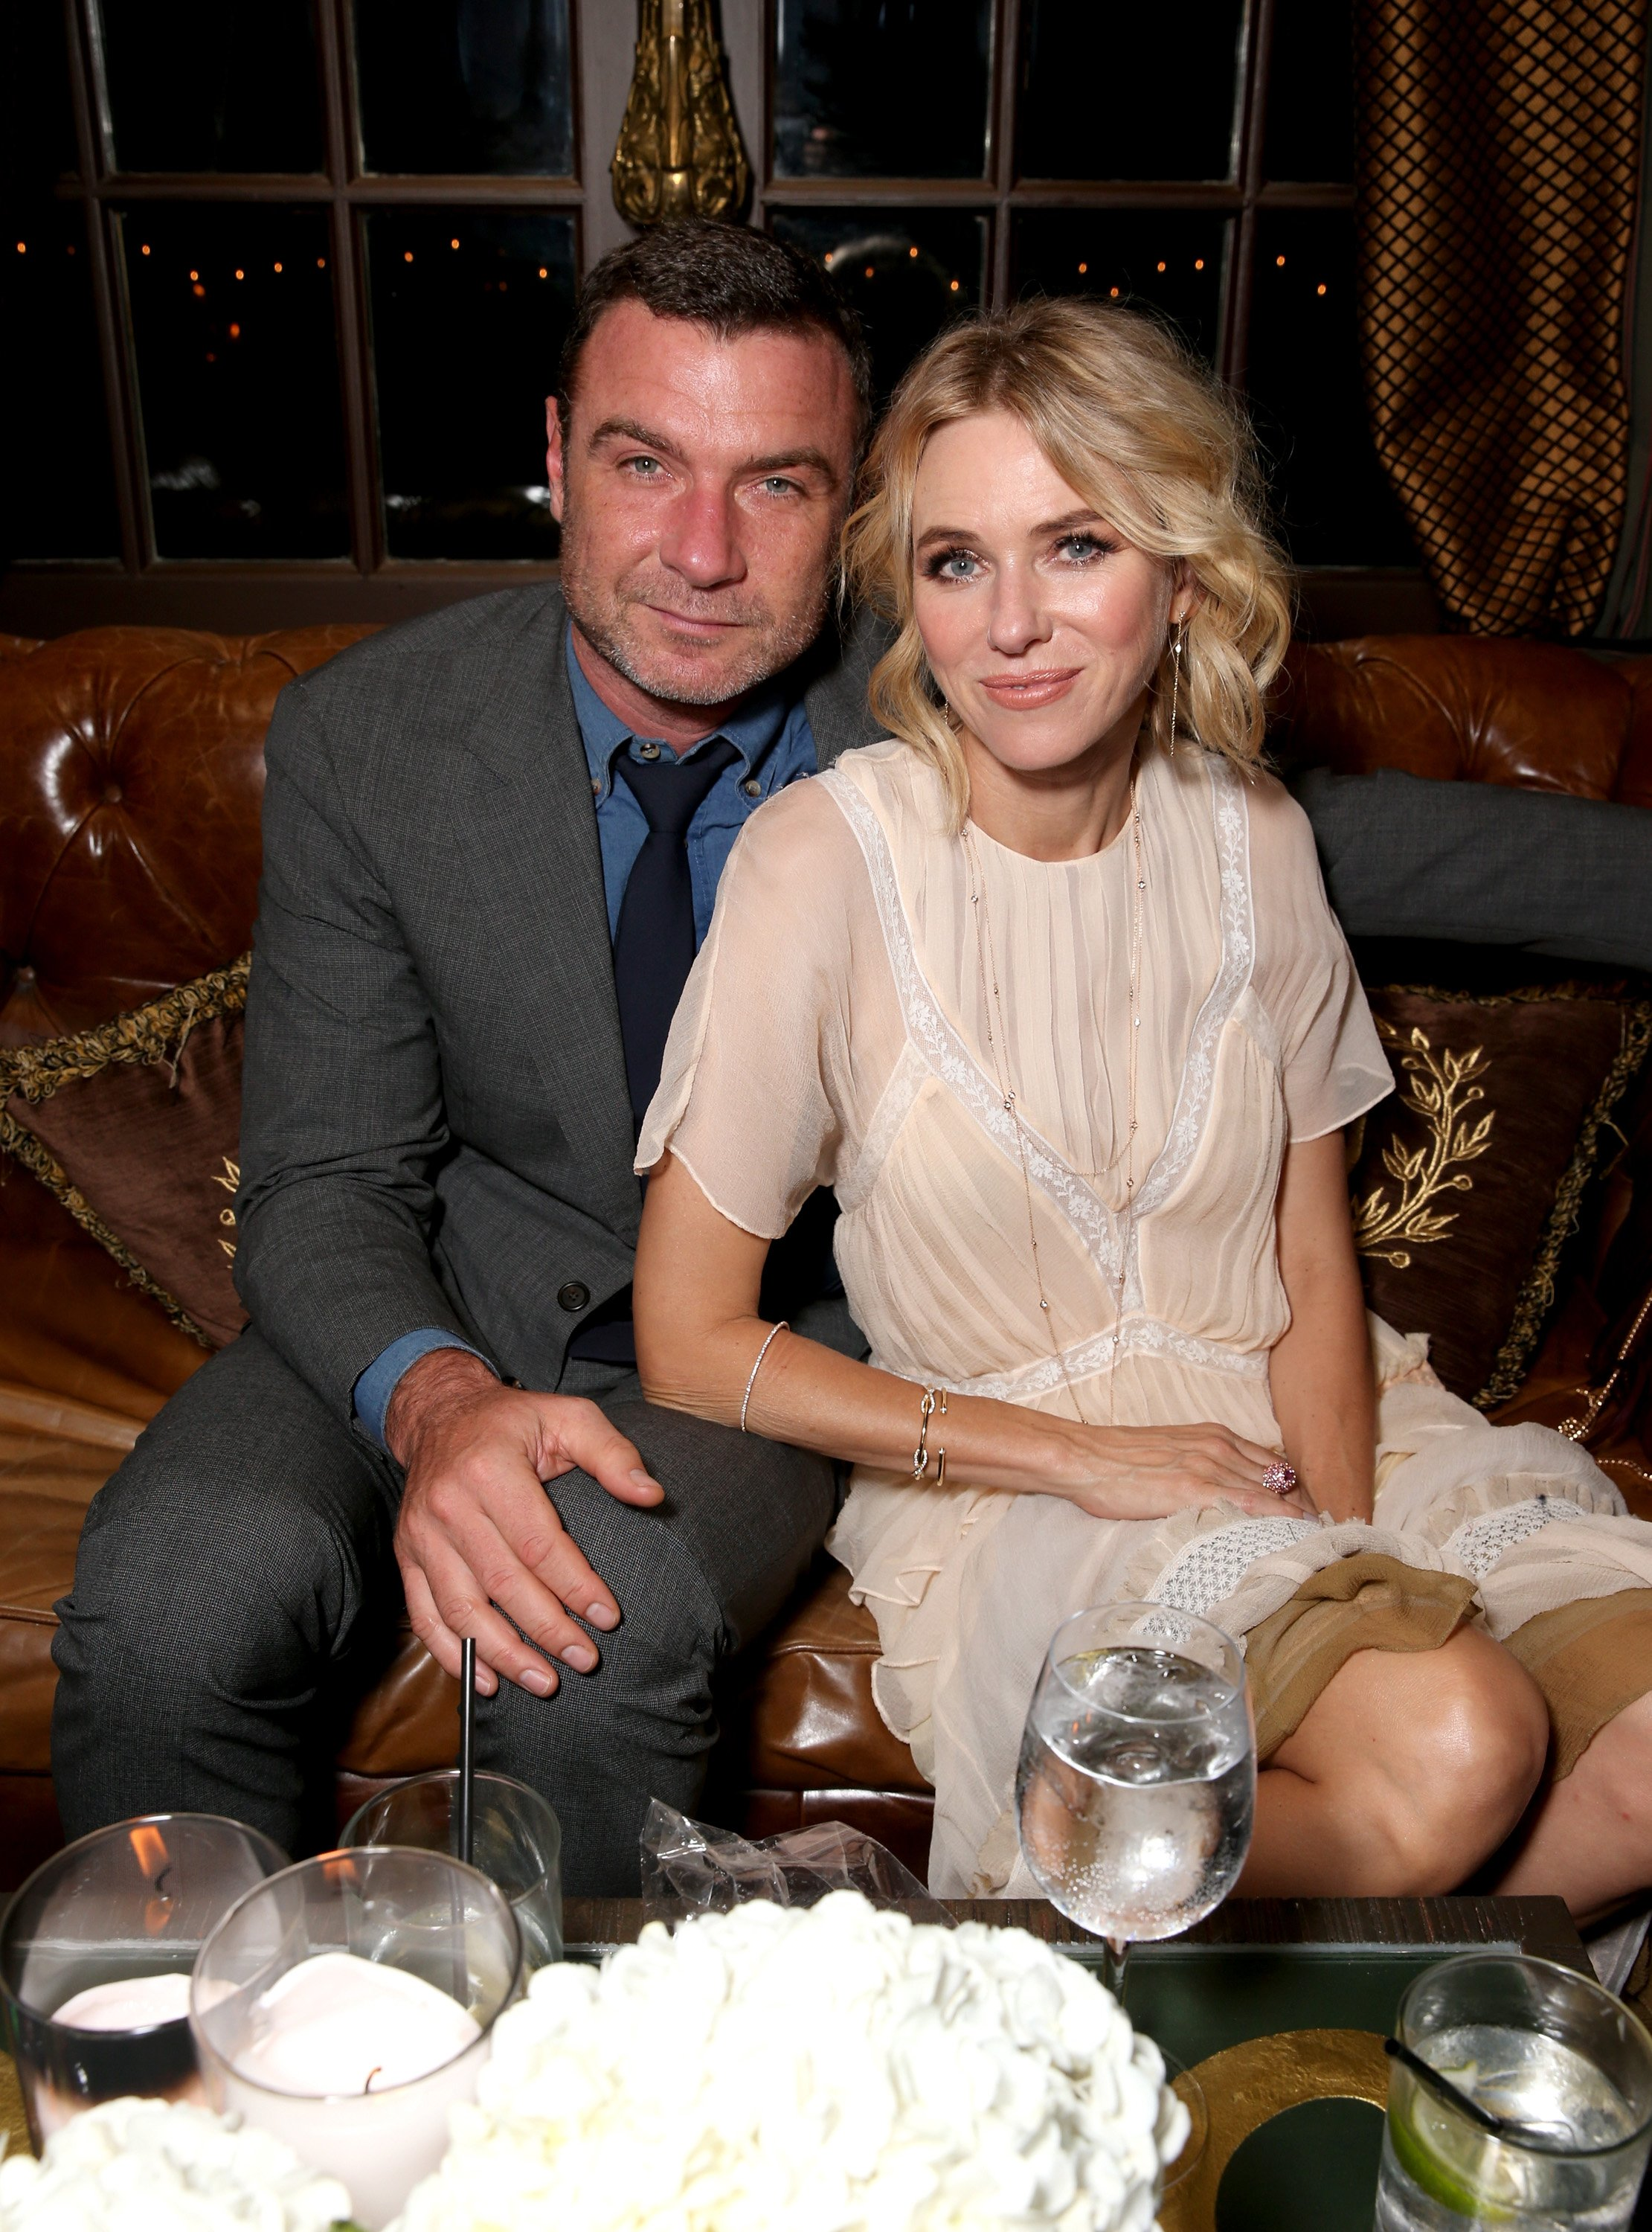 Leiv Schreiber and Naomi Watts attend the Hollywood Foreign Press Association and InStyle's annual celebration of the Toronto International Film Festival at Windsor Arms Hotel on September 10, 2016 in Toronto